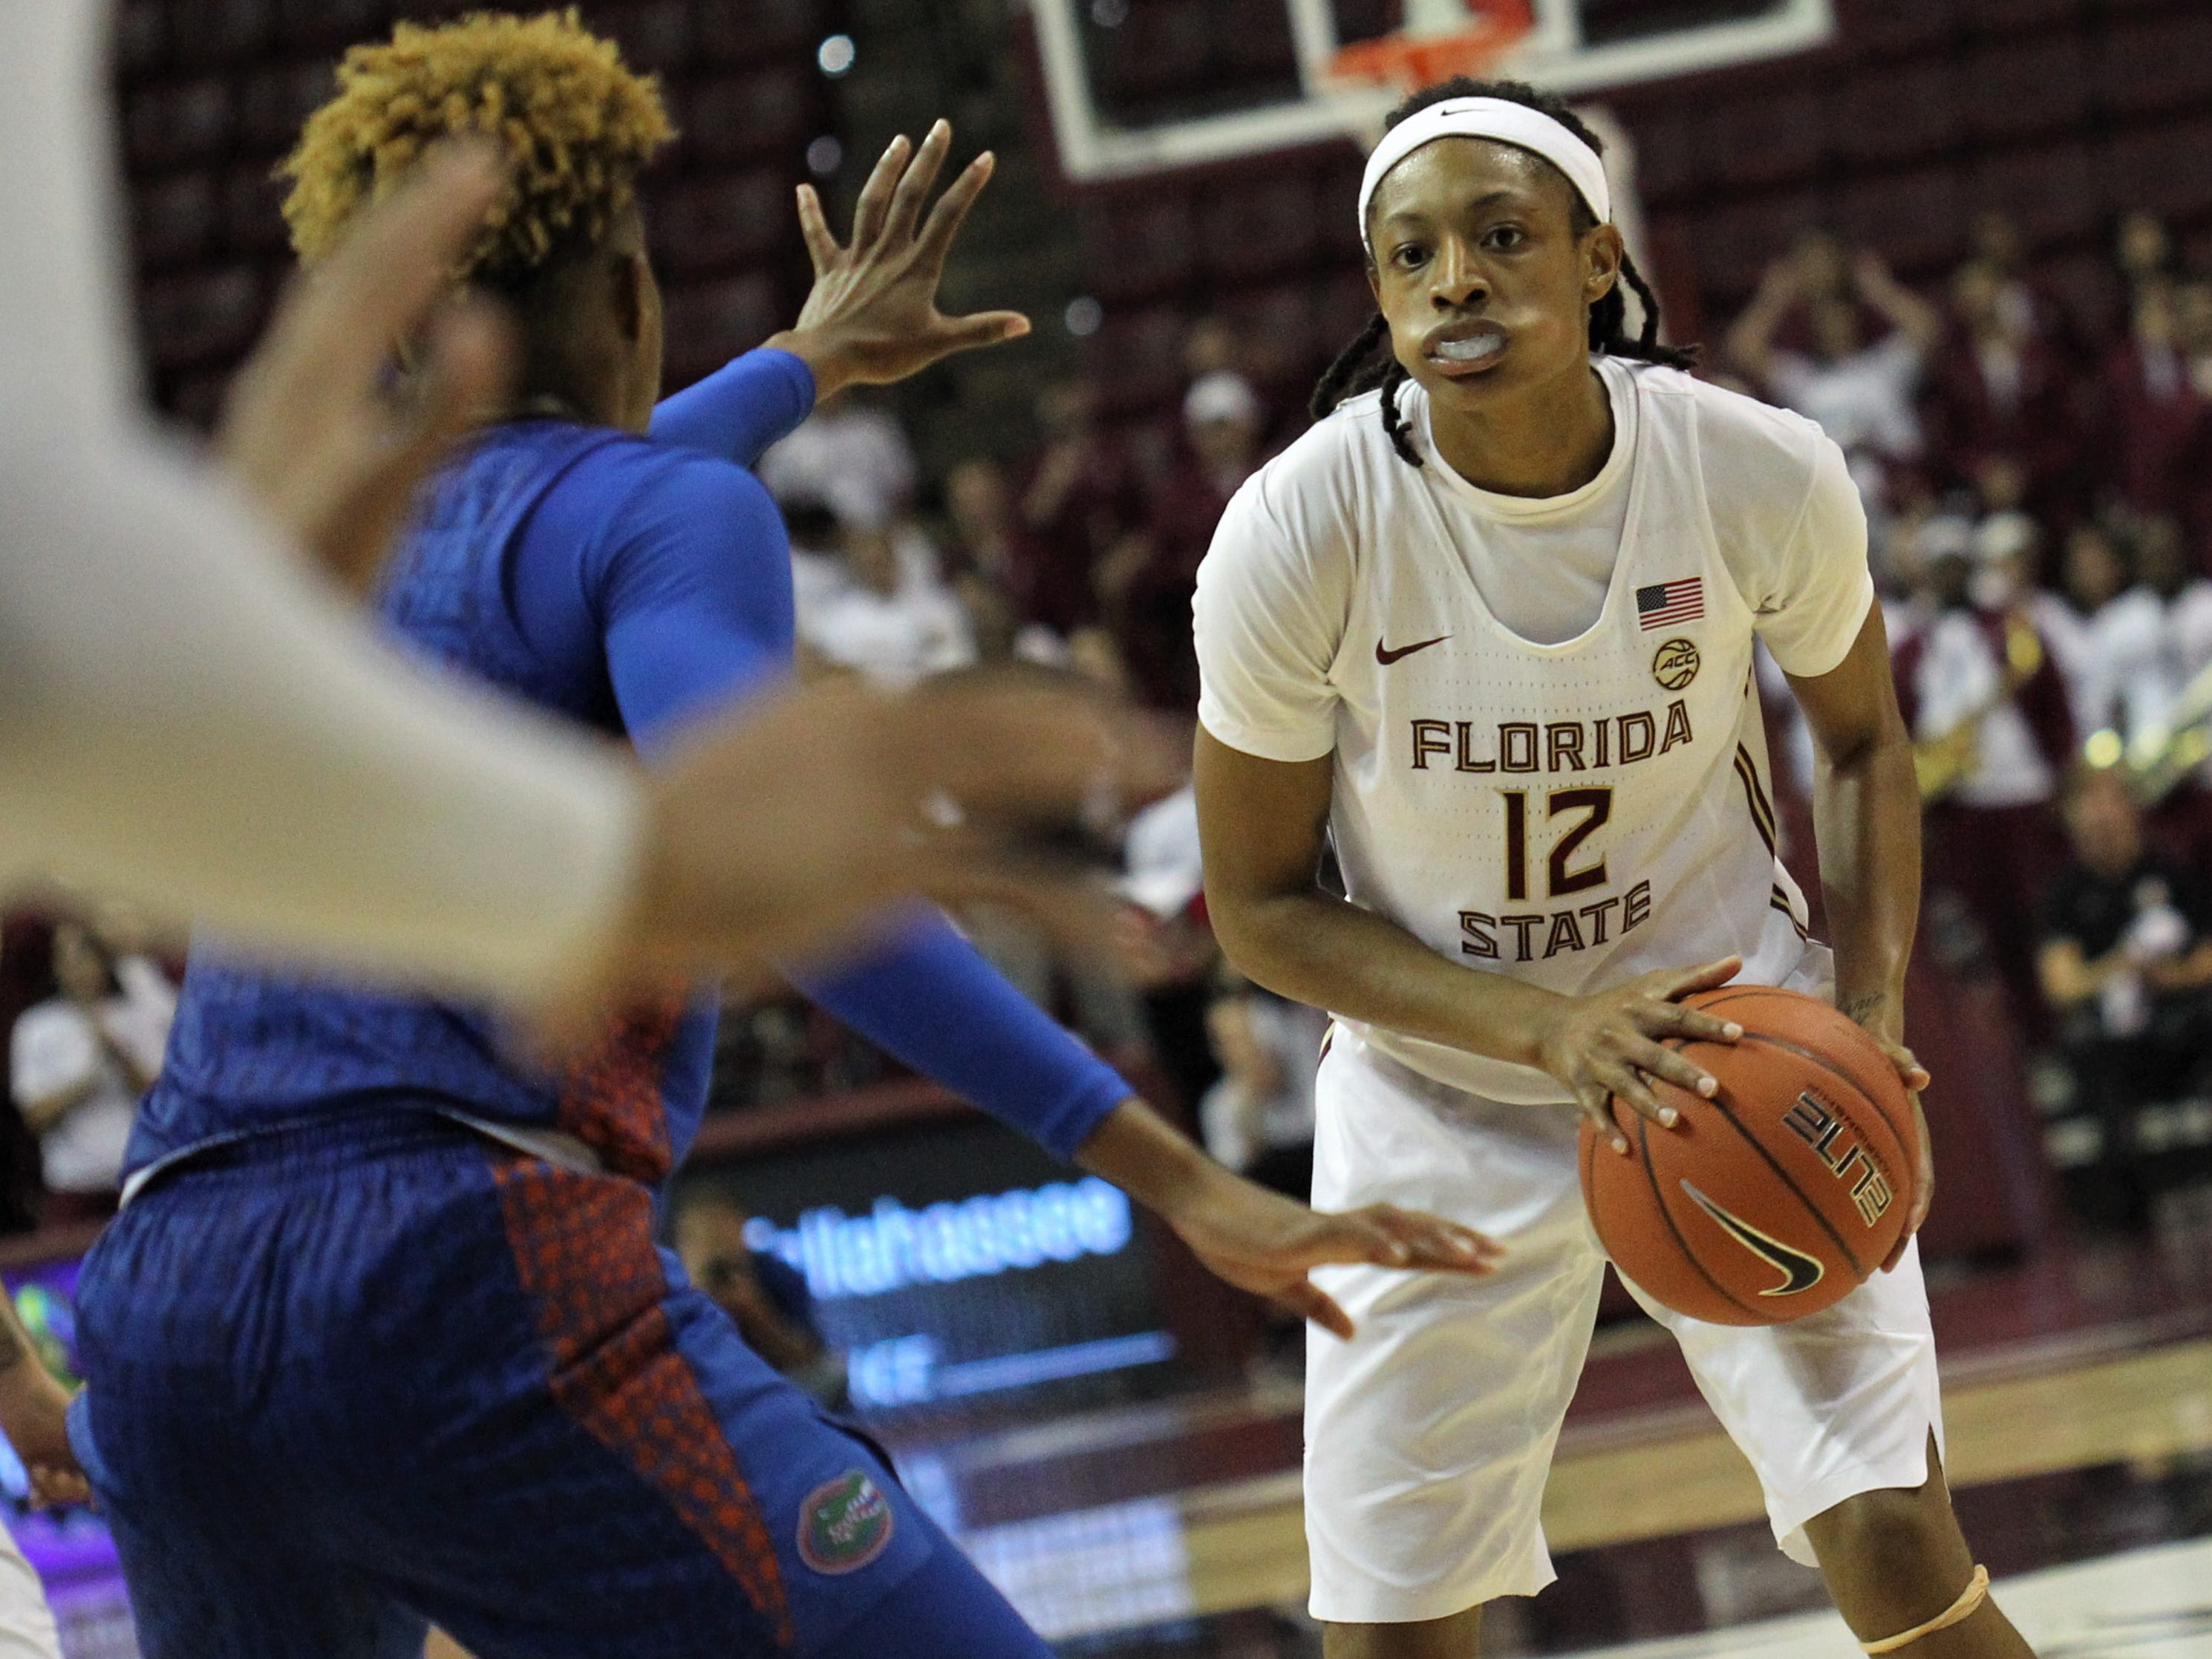 Florida State's Nicki Ekhomu looks for a pass to the post during the second half of the Seminoles' game against Florida at the Tucker Civic Center on Nov. 11, 2018.